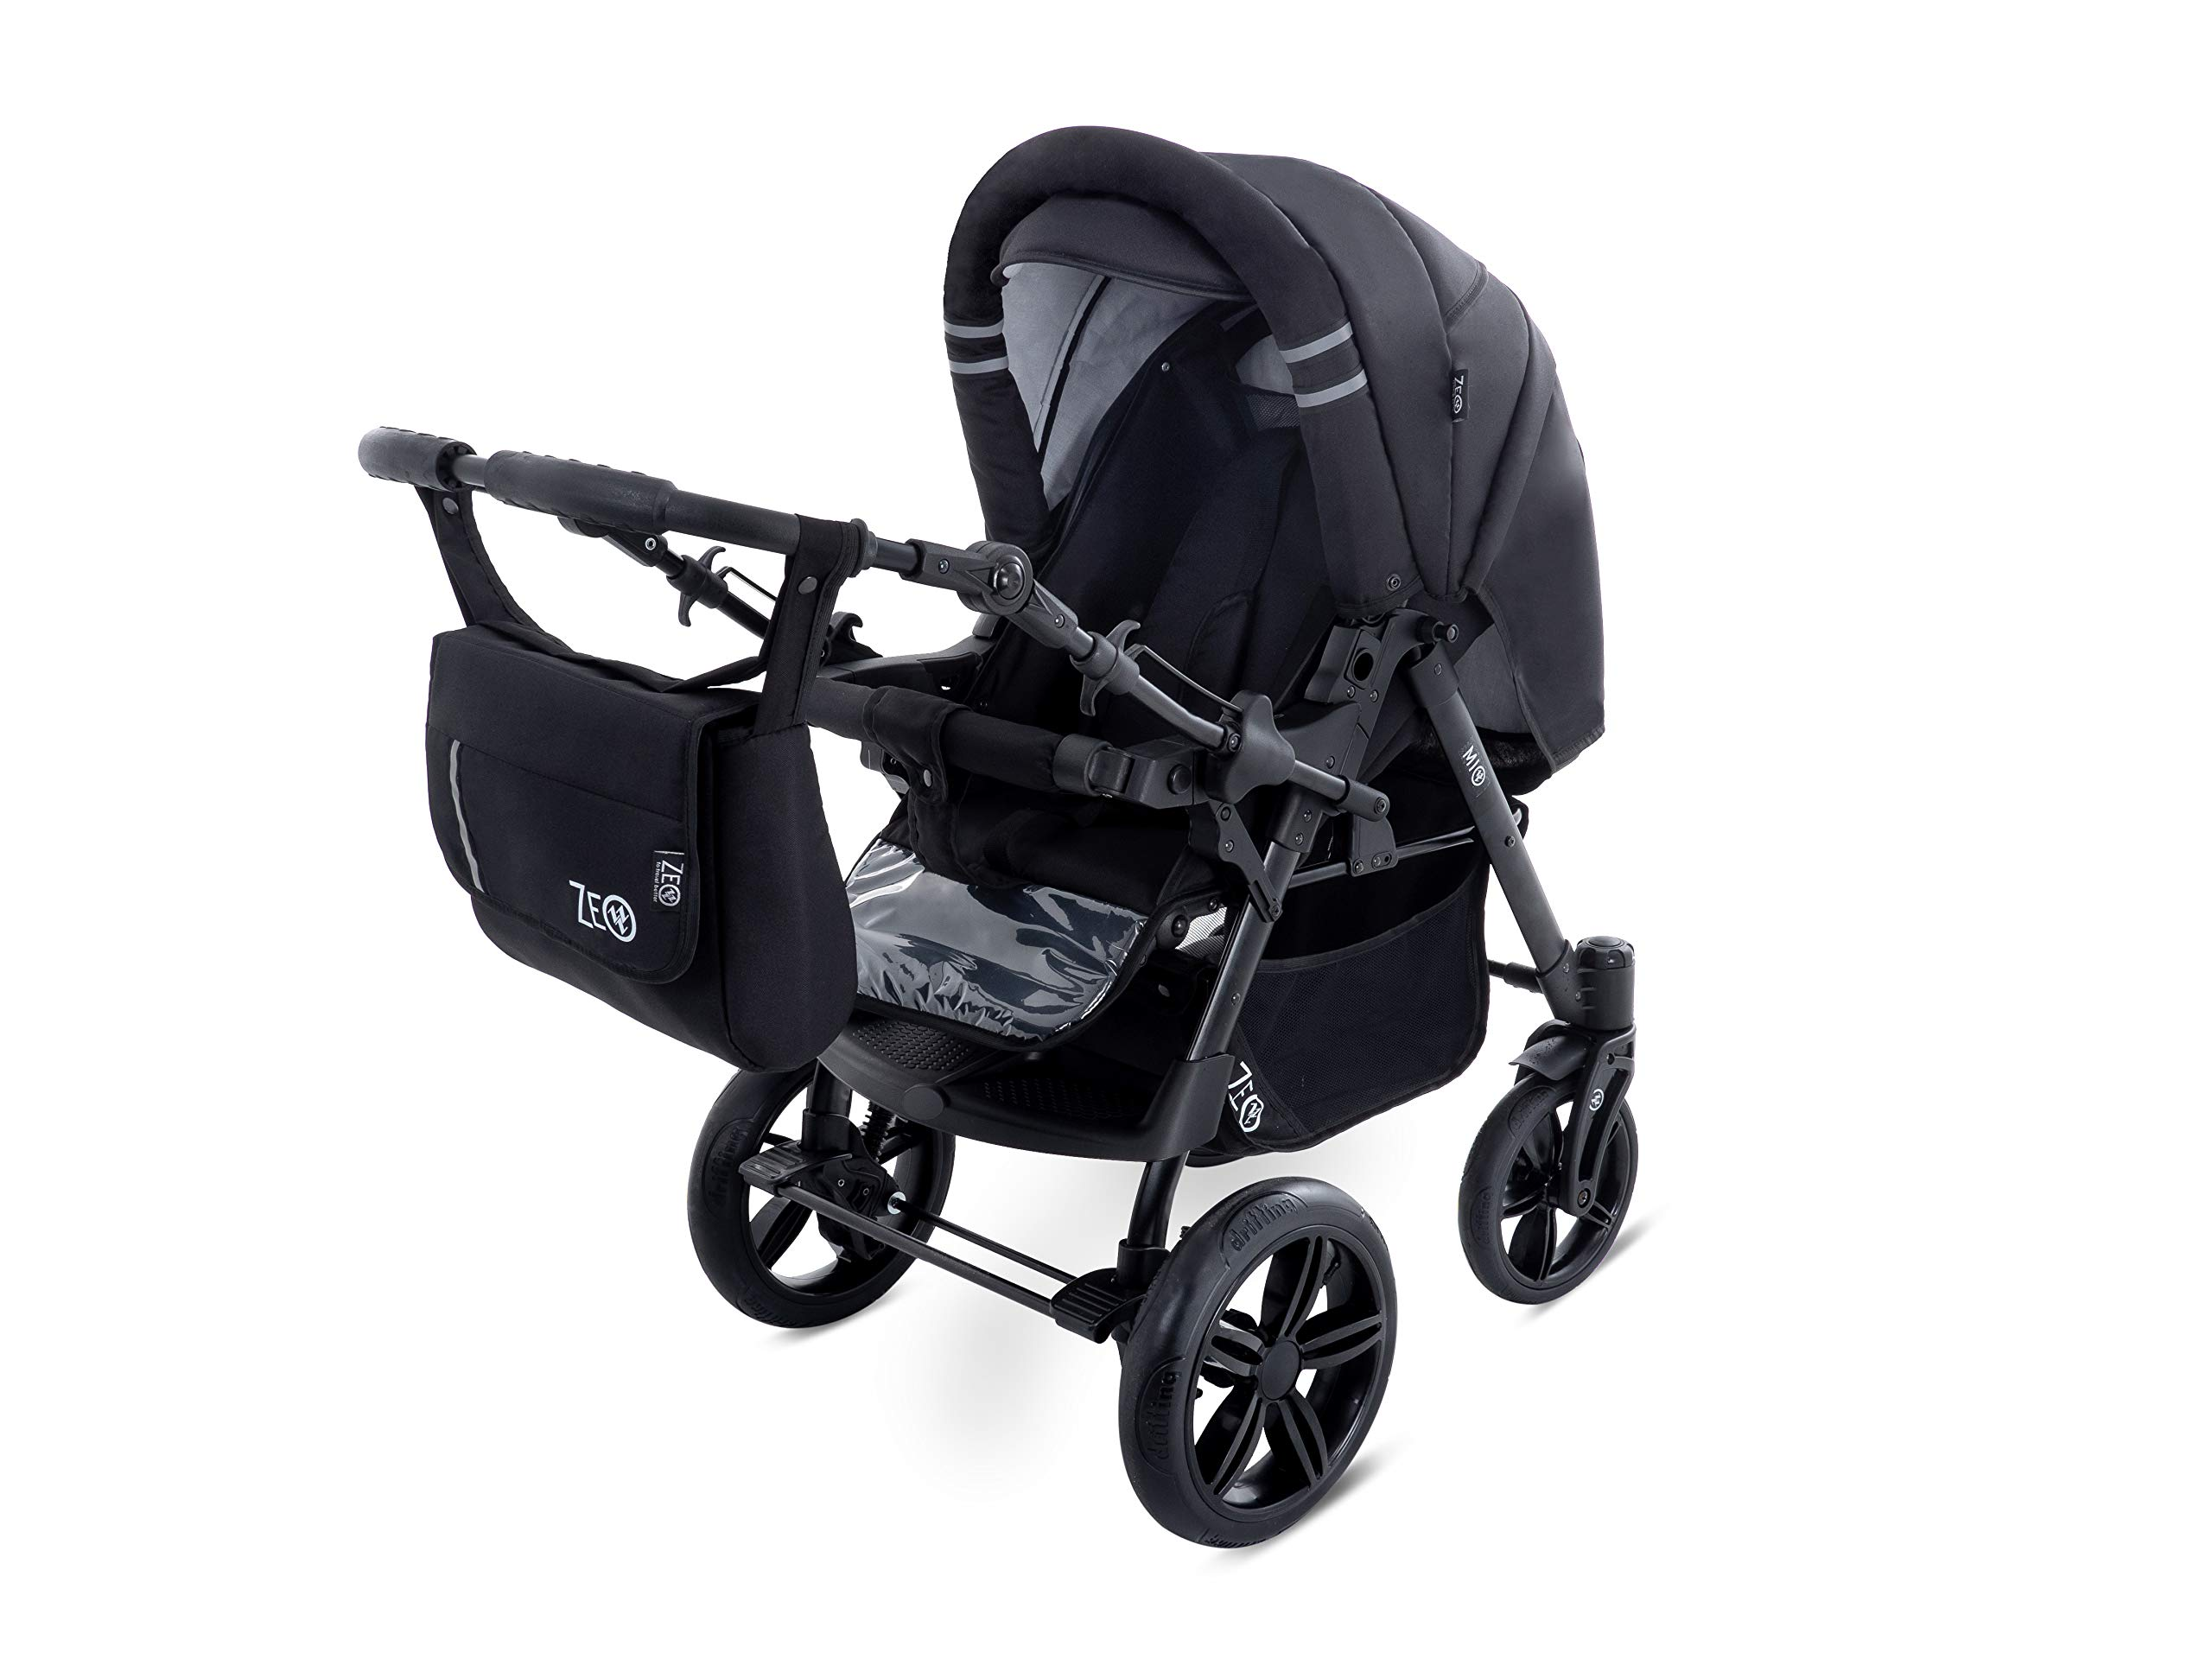 Baby Pram Zeo Mio 3in1 Set - All You Need! carrycot Gondola Buggy Sport Part Pushchair car seat (M1)  3 in 1 combination stroller complete set, with reversible handle to the buggy, child car seat or baby carriage Has 360 ° swiveling wheels, two-fold suspension, four-stage backrest, five-position adjustable footrest and a five-point safety belt The stroller can be easily converted into other functions and easy to transport 7